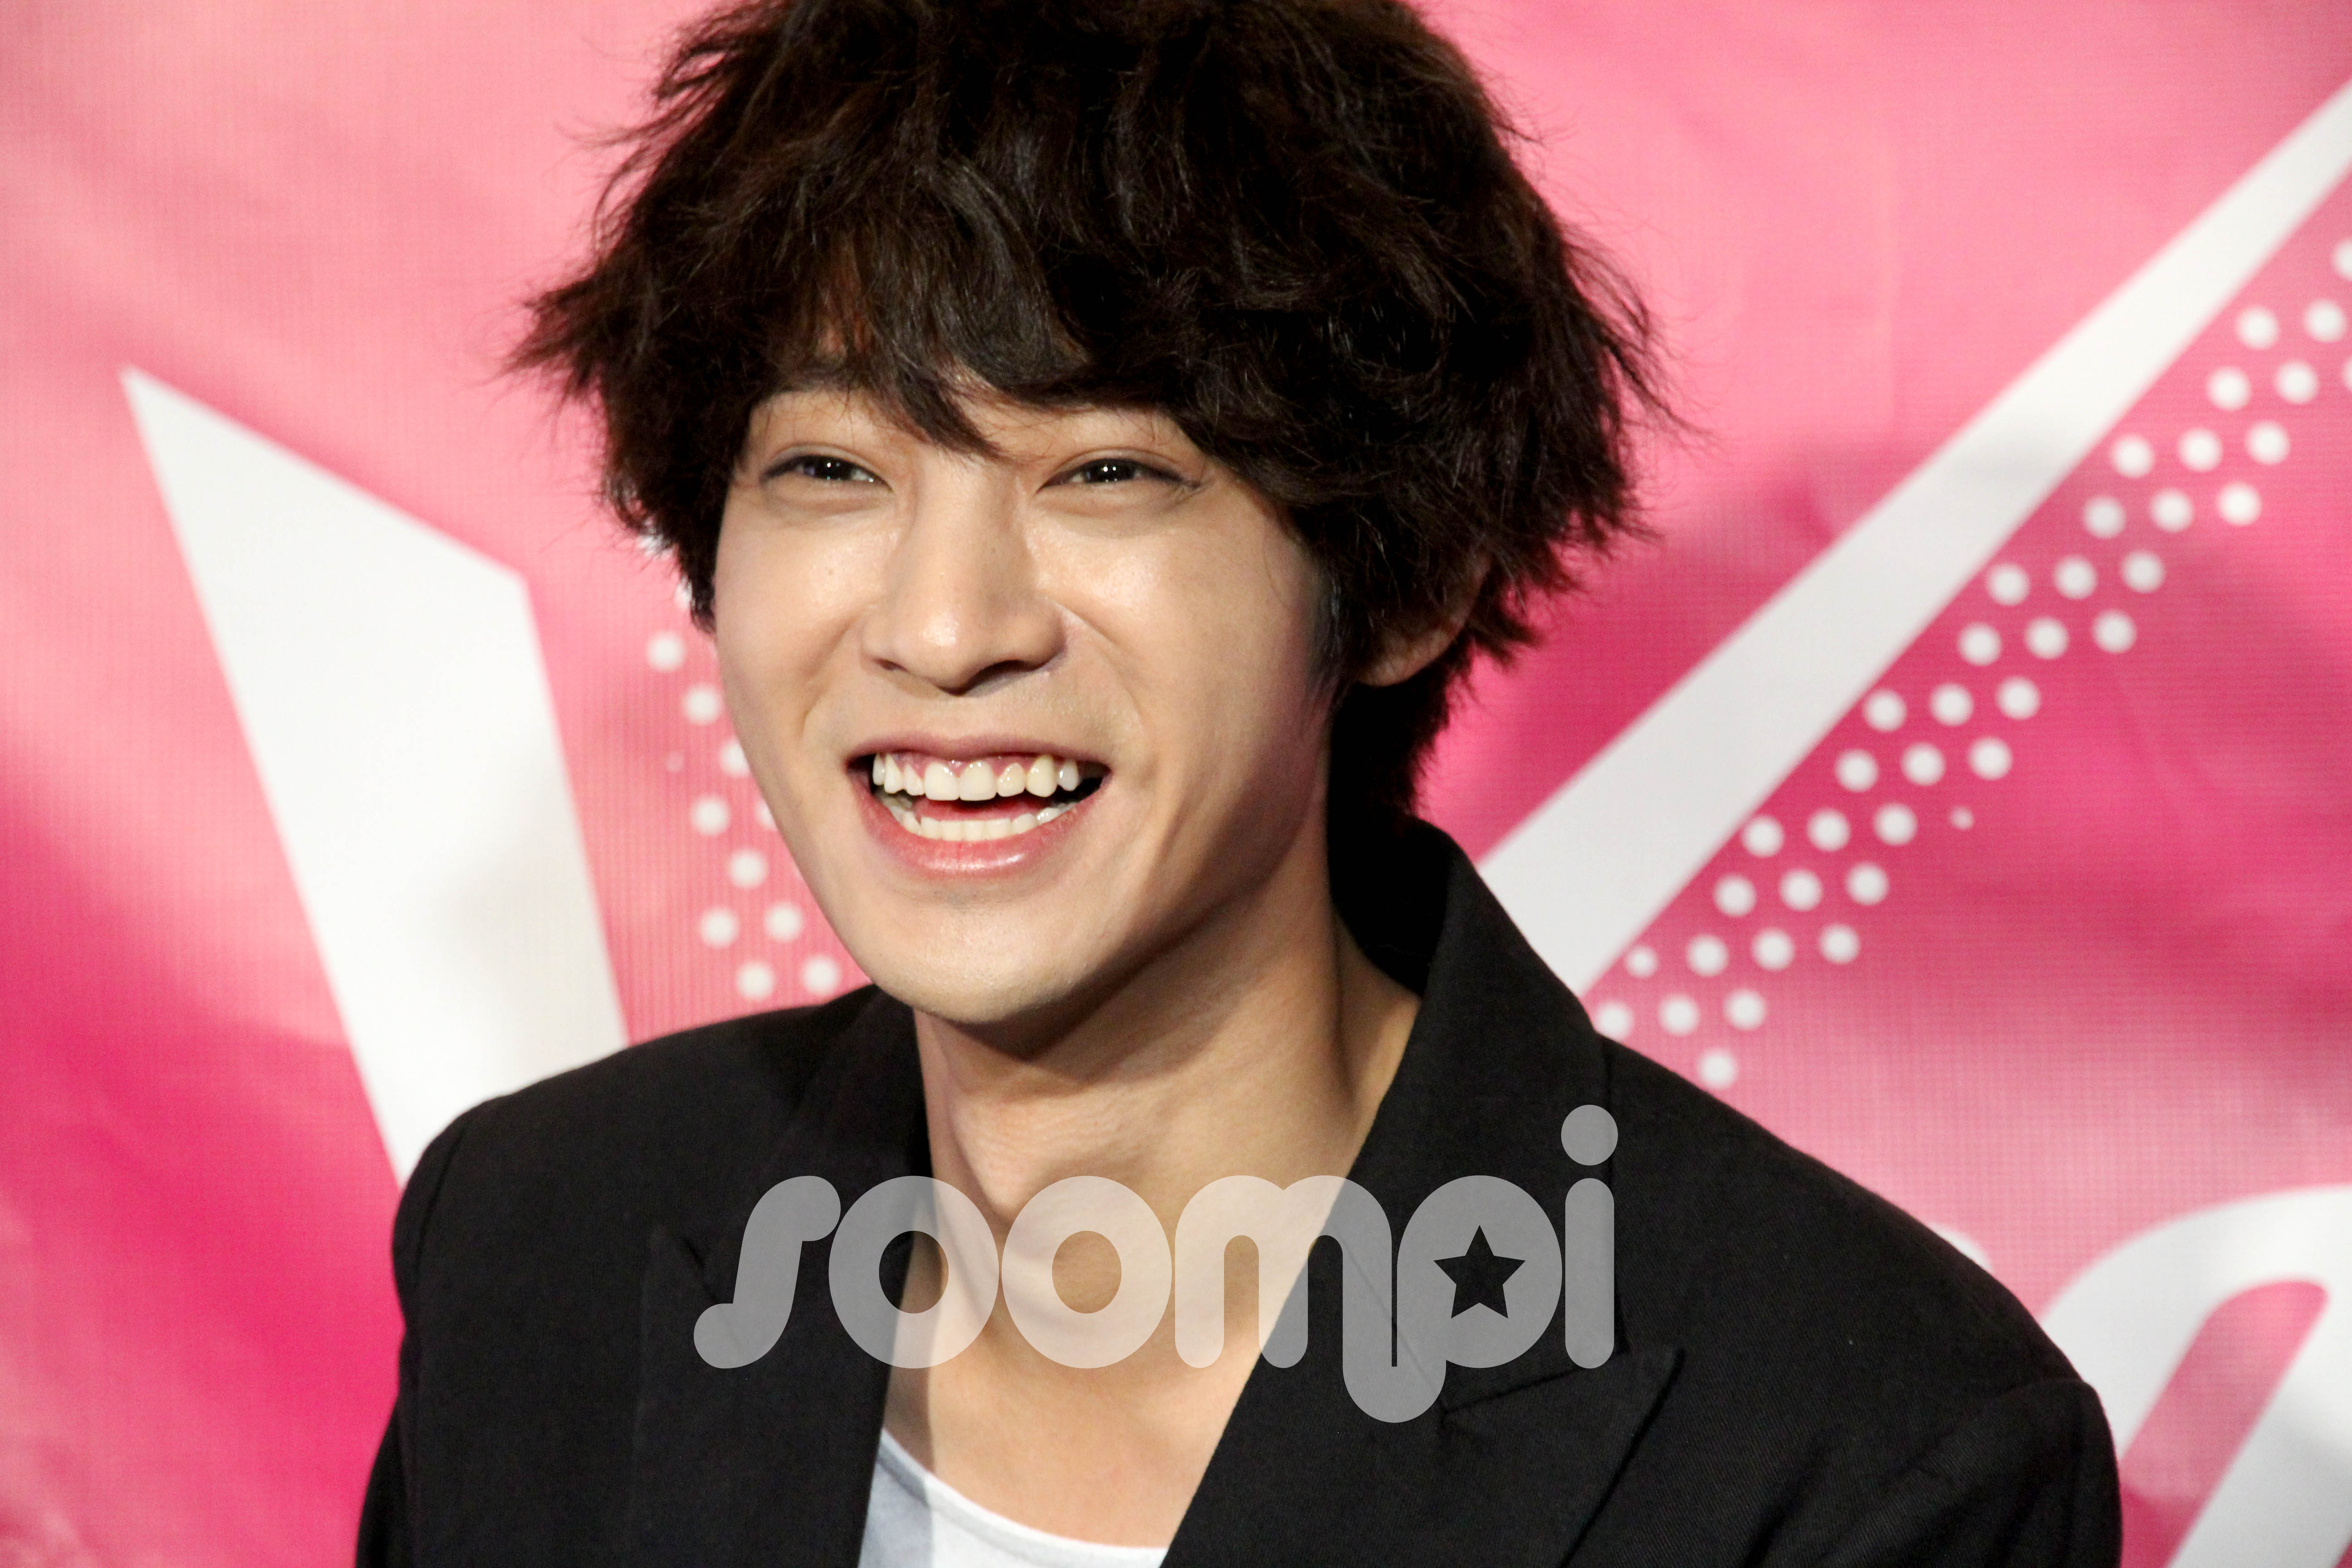 Jung joon young celebrity babysitter eng